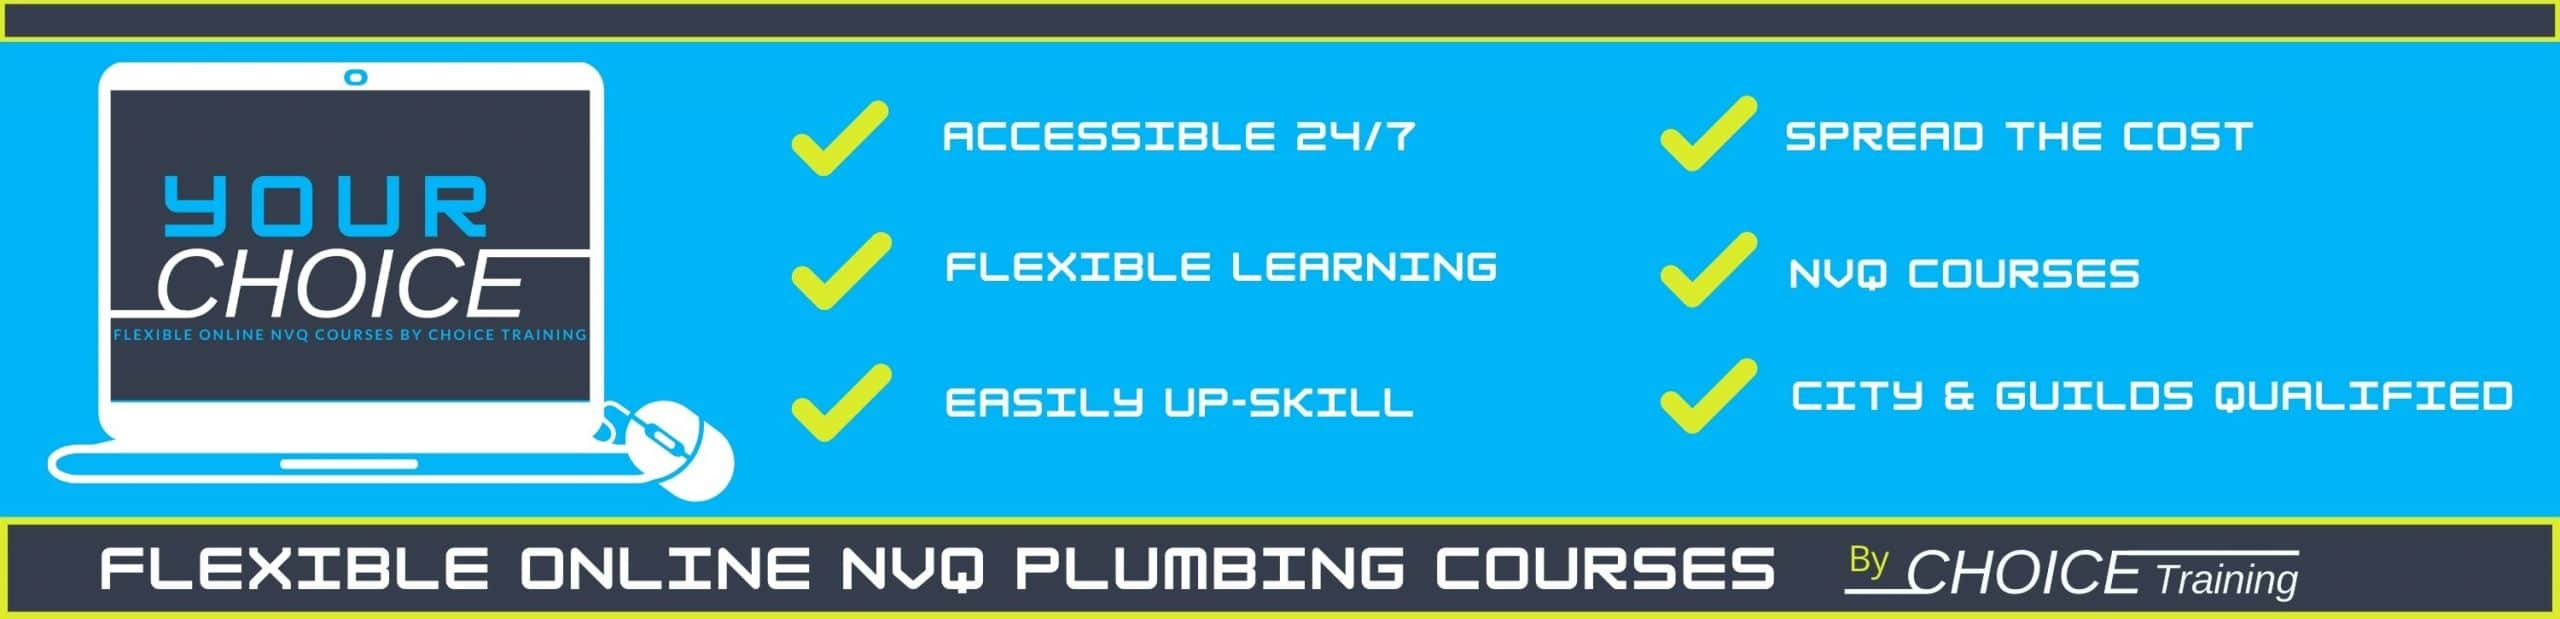 YOUR CHOICE by Choice Training Home page slide 2 Online NVQ info